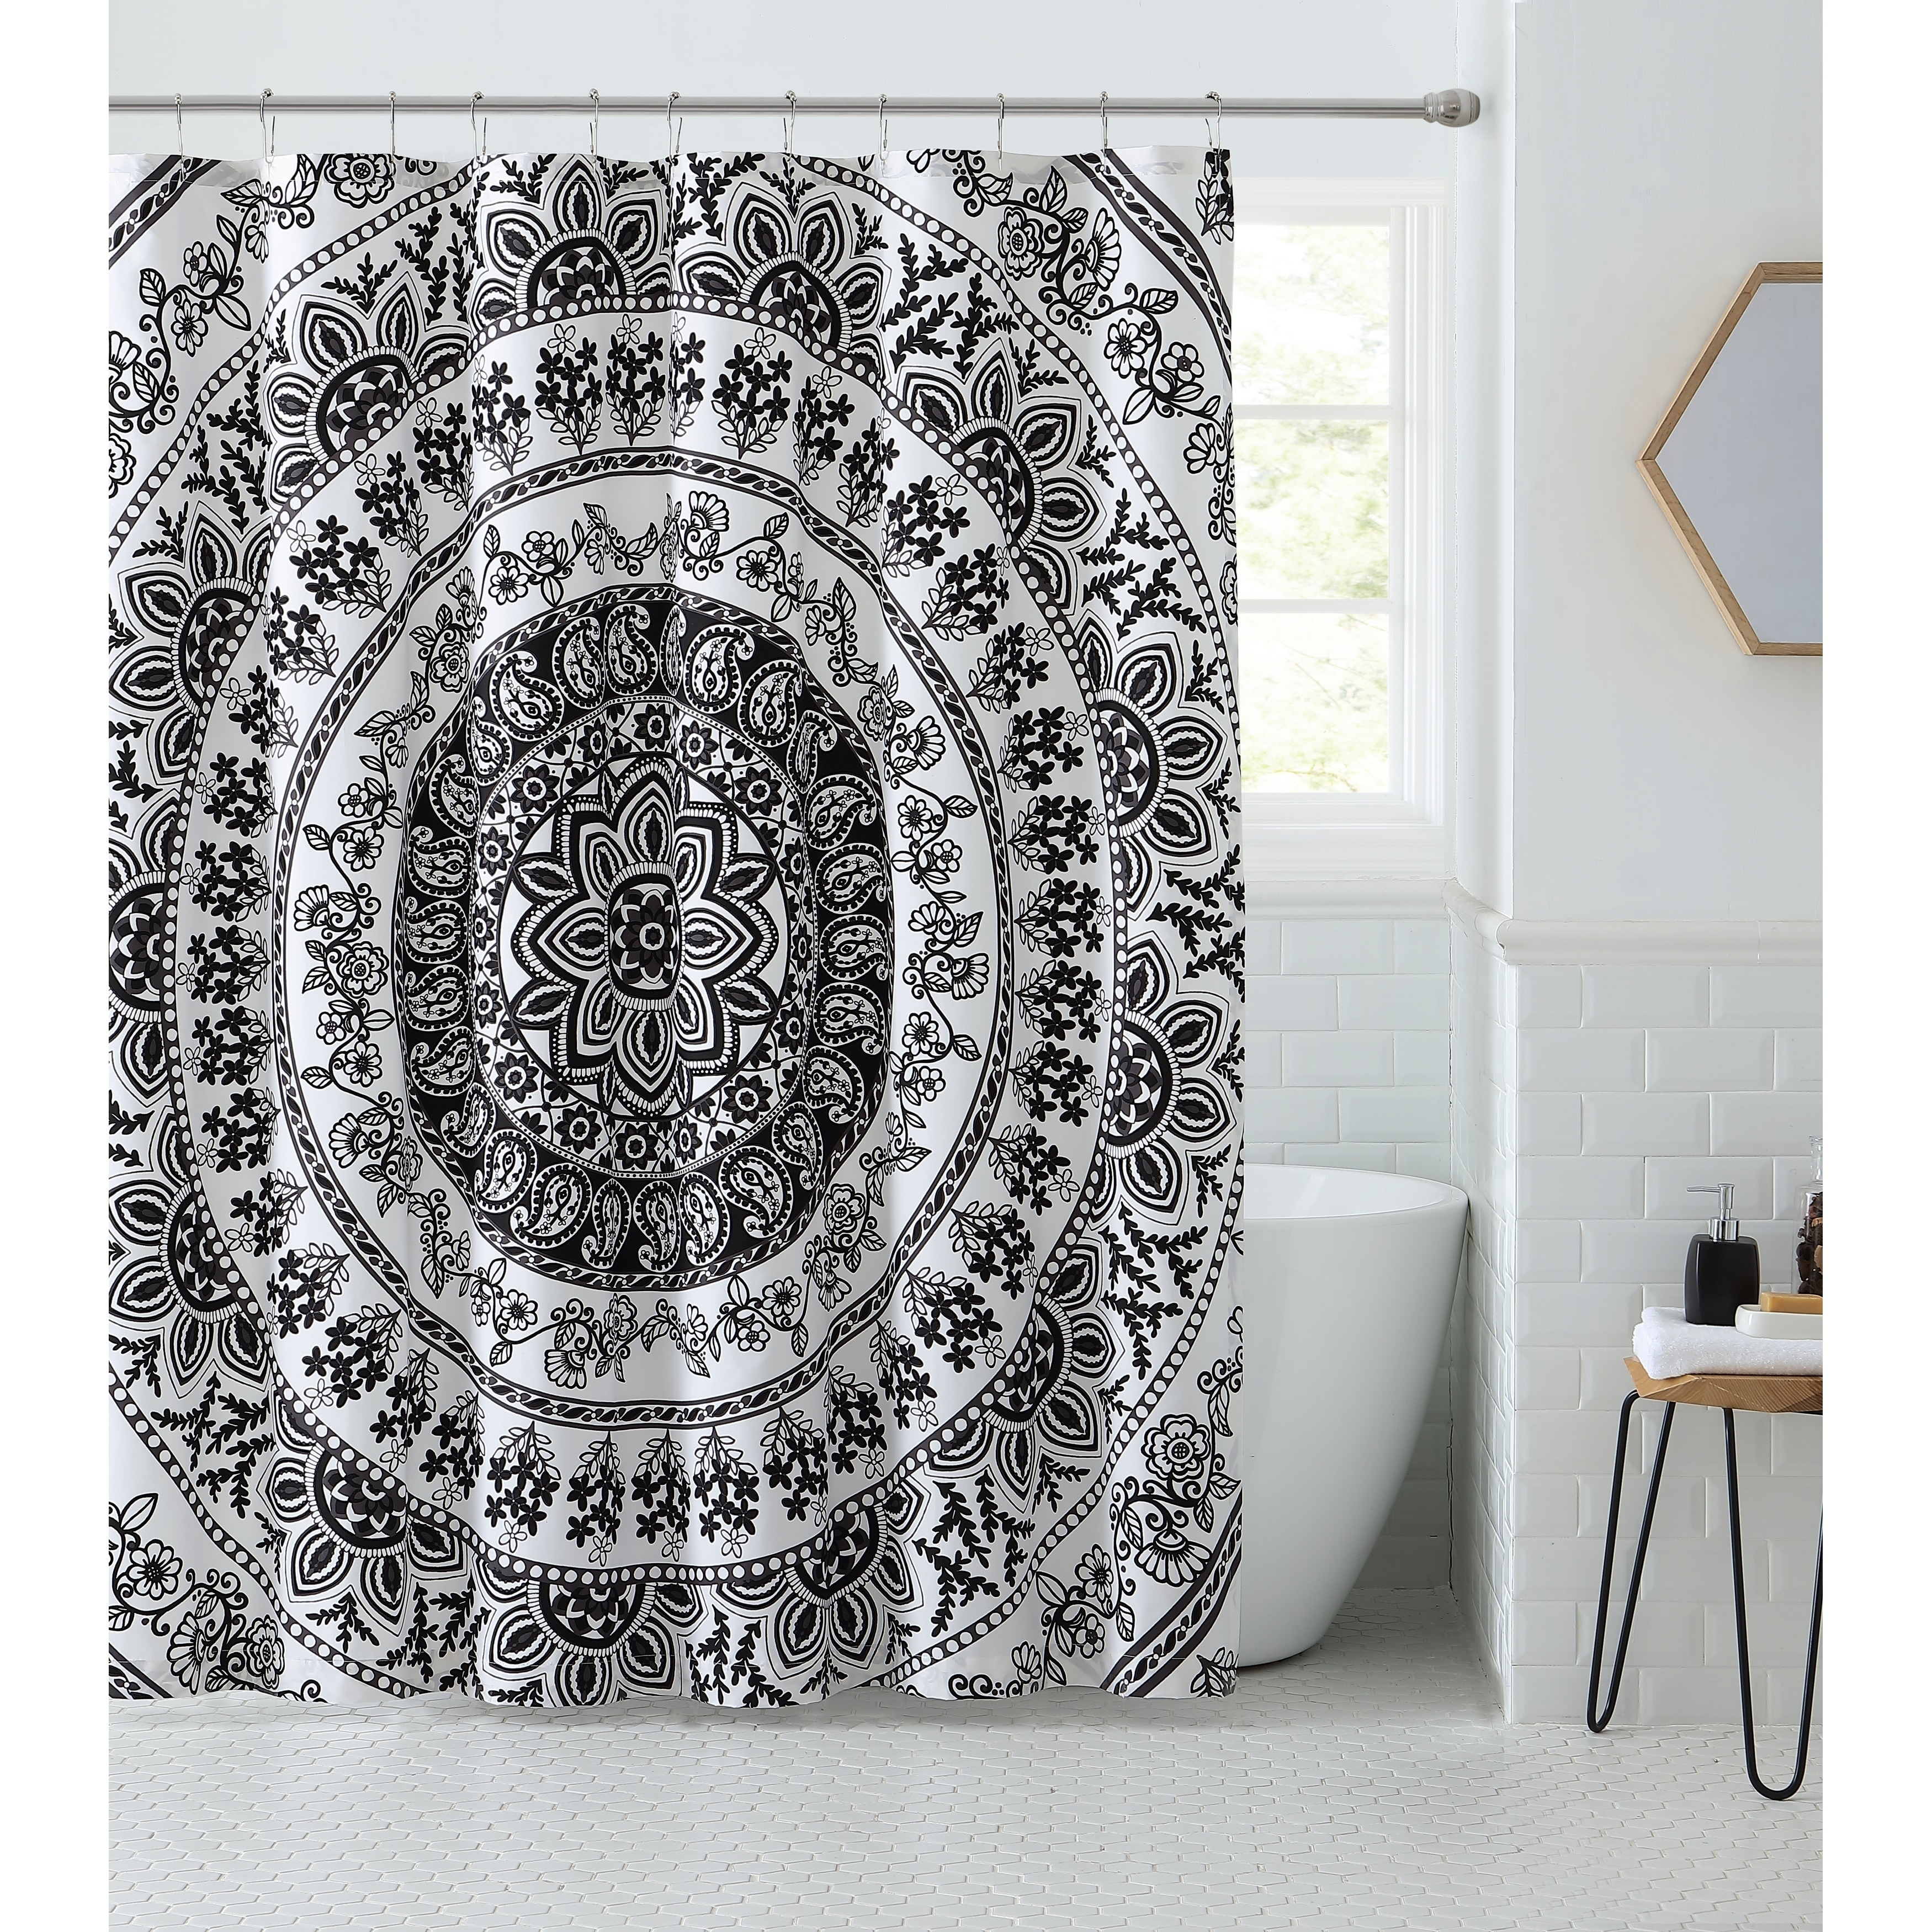 Shop VCNY Home Kaci Black White Medallion Shower Curtain